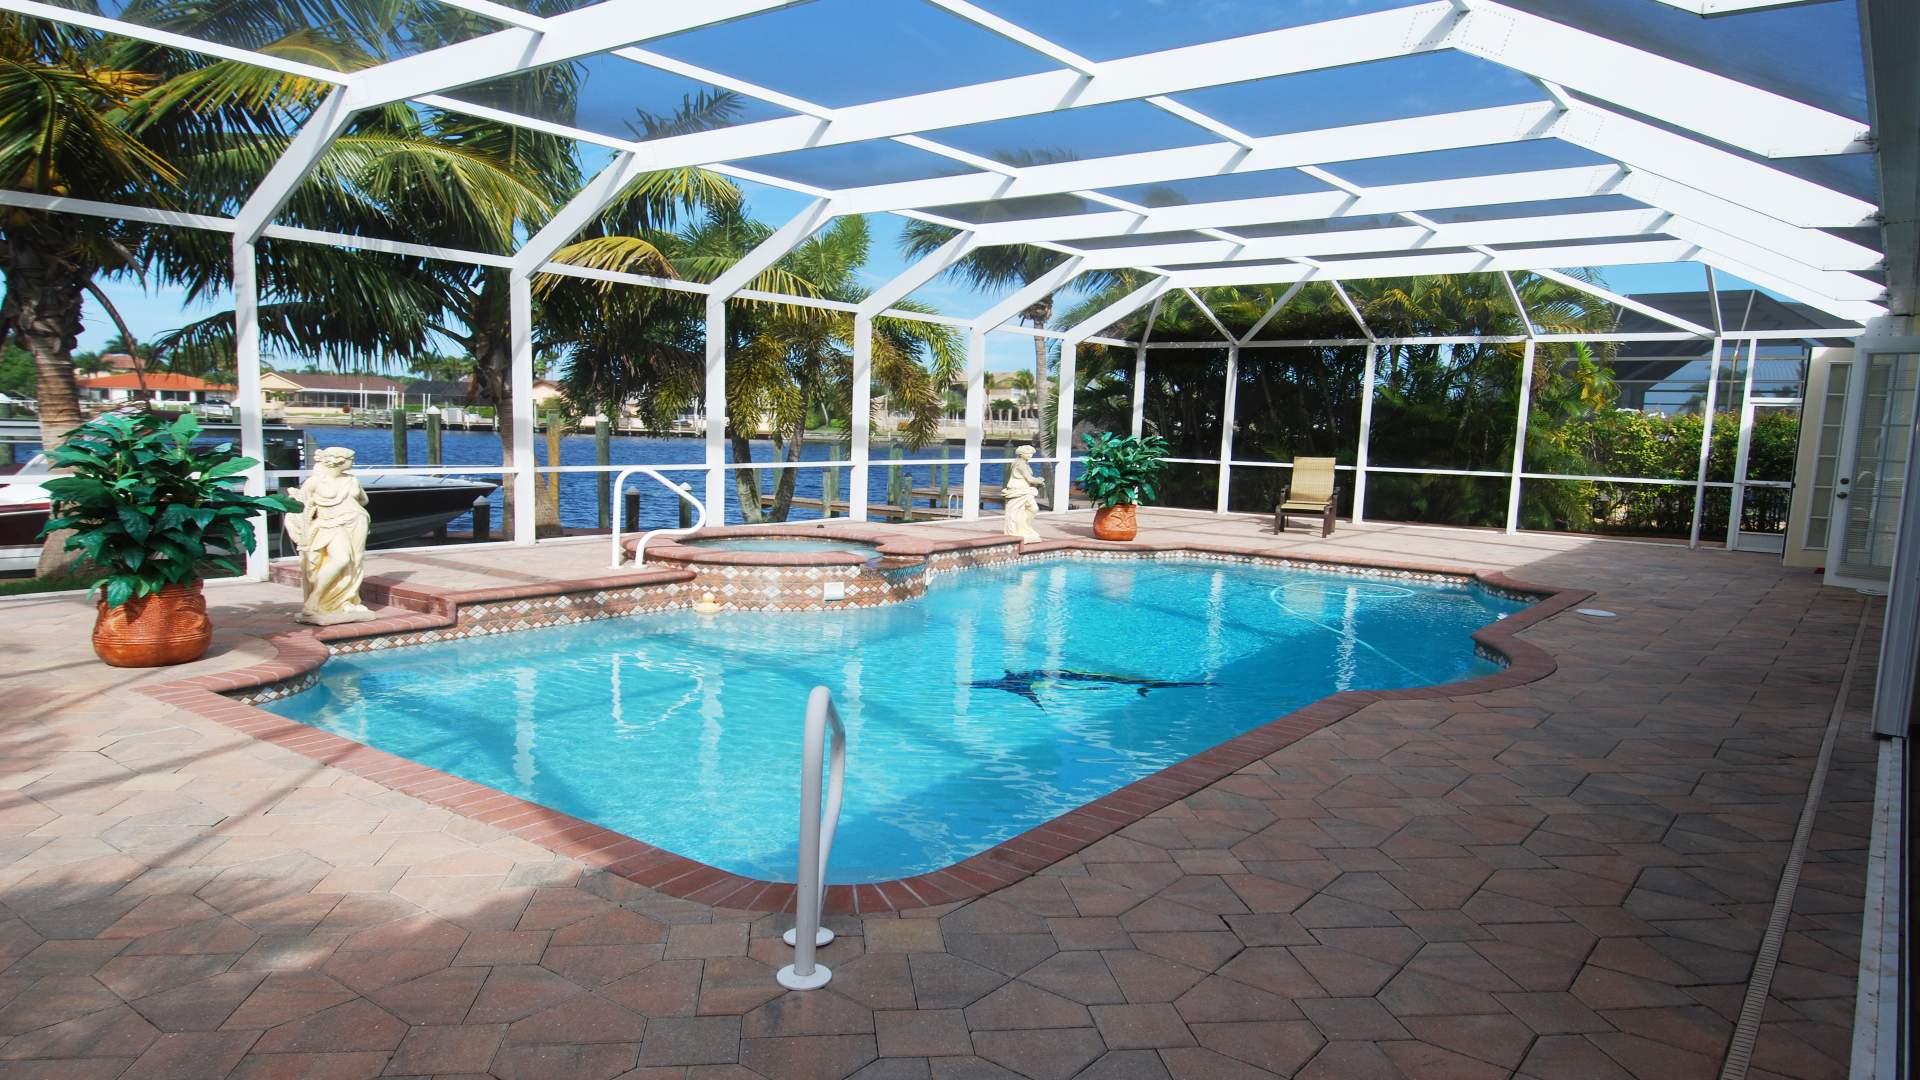 The paved pool area faces west and overlooks a wide sailboat canal